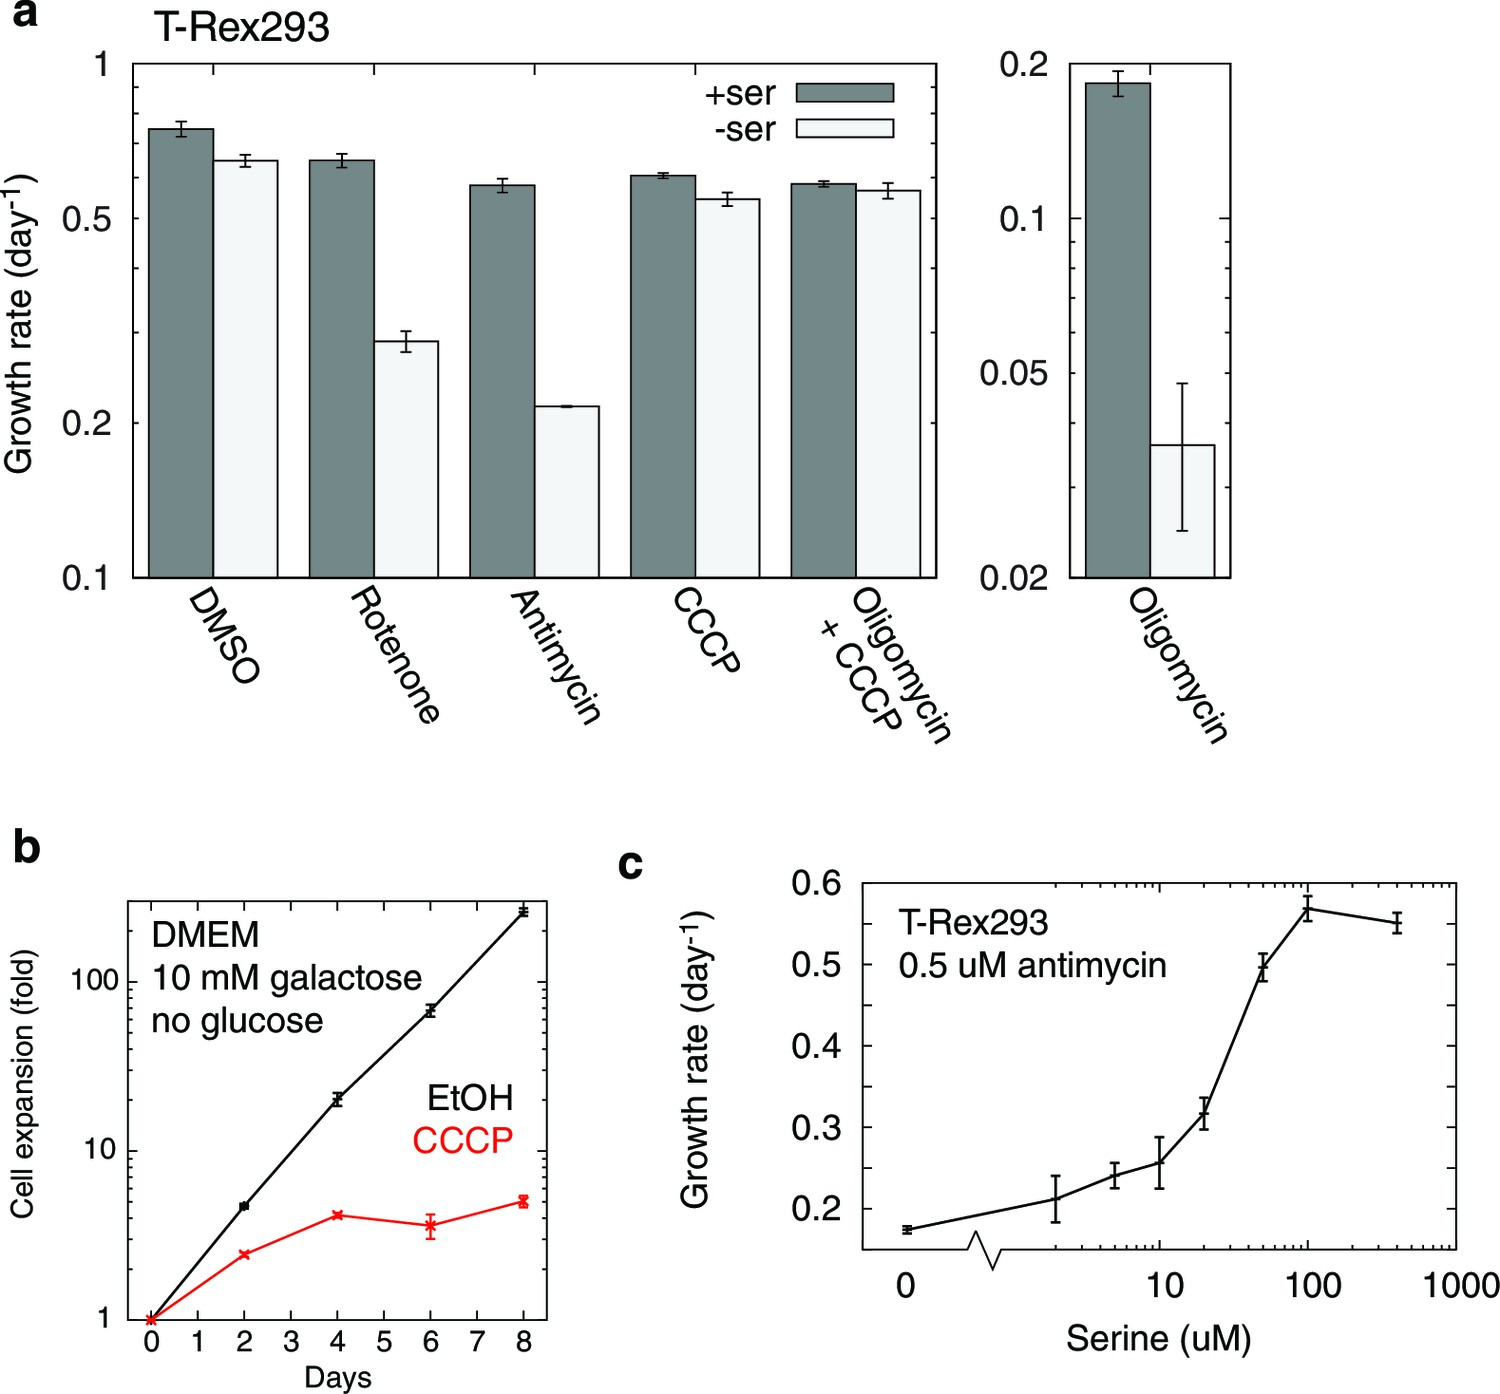 Additional Data On Rc Inhibition Induced Serine Dependency In T Rex 293 Cells